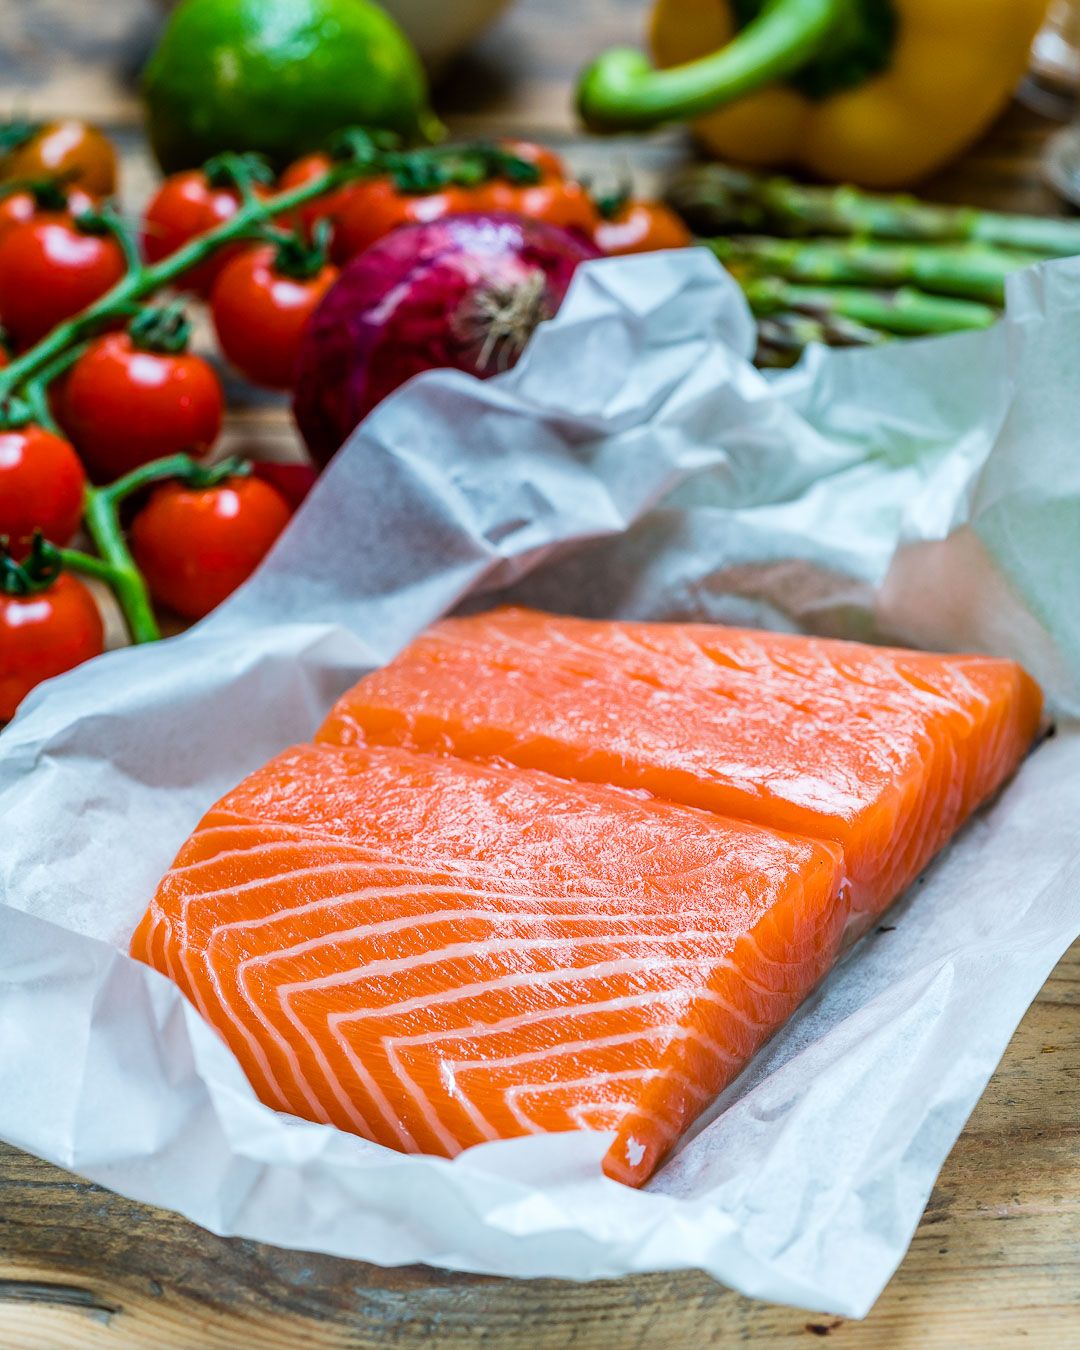 Easy Baked Salmon and Veggies Recipe - How to Cook Salmon In The Oven